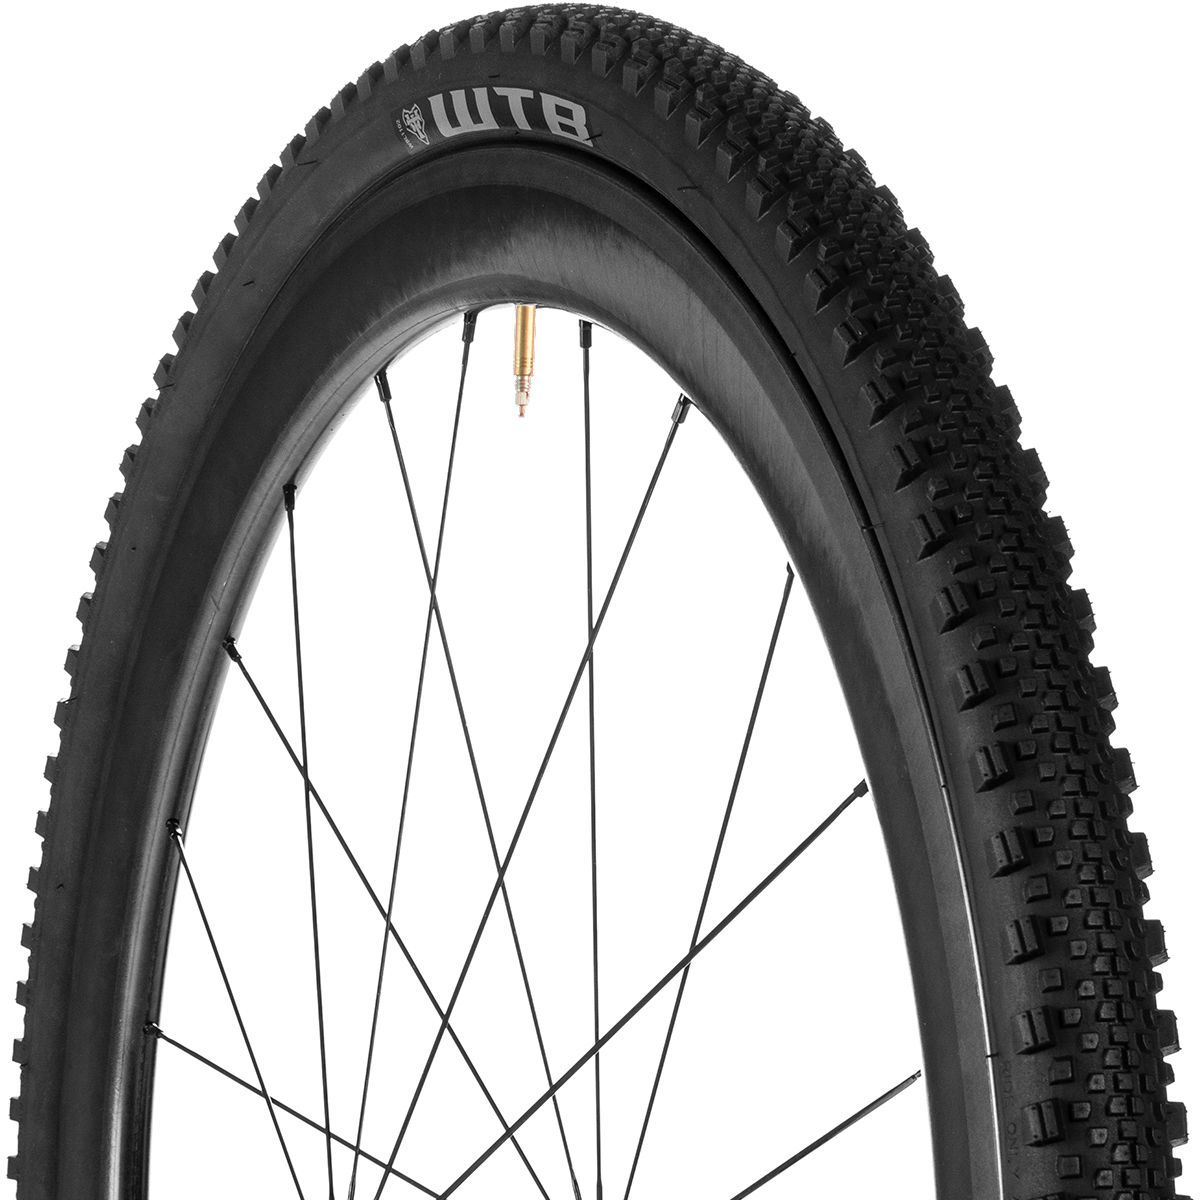 Wtb Raddler Tcs Light Tire Tubeless In 2020 Mountain Bike